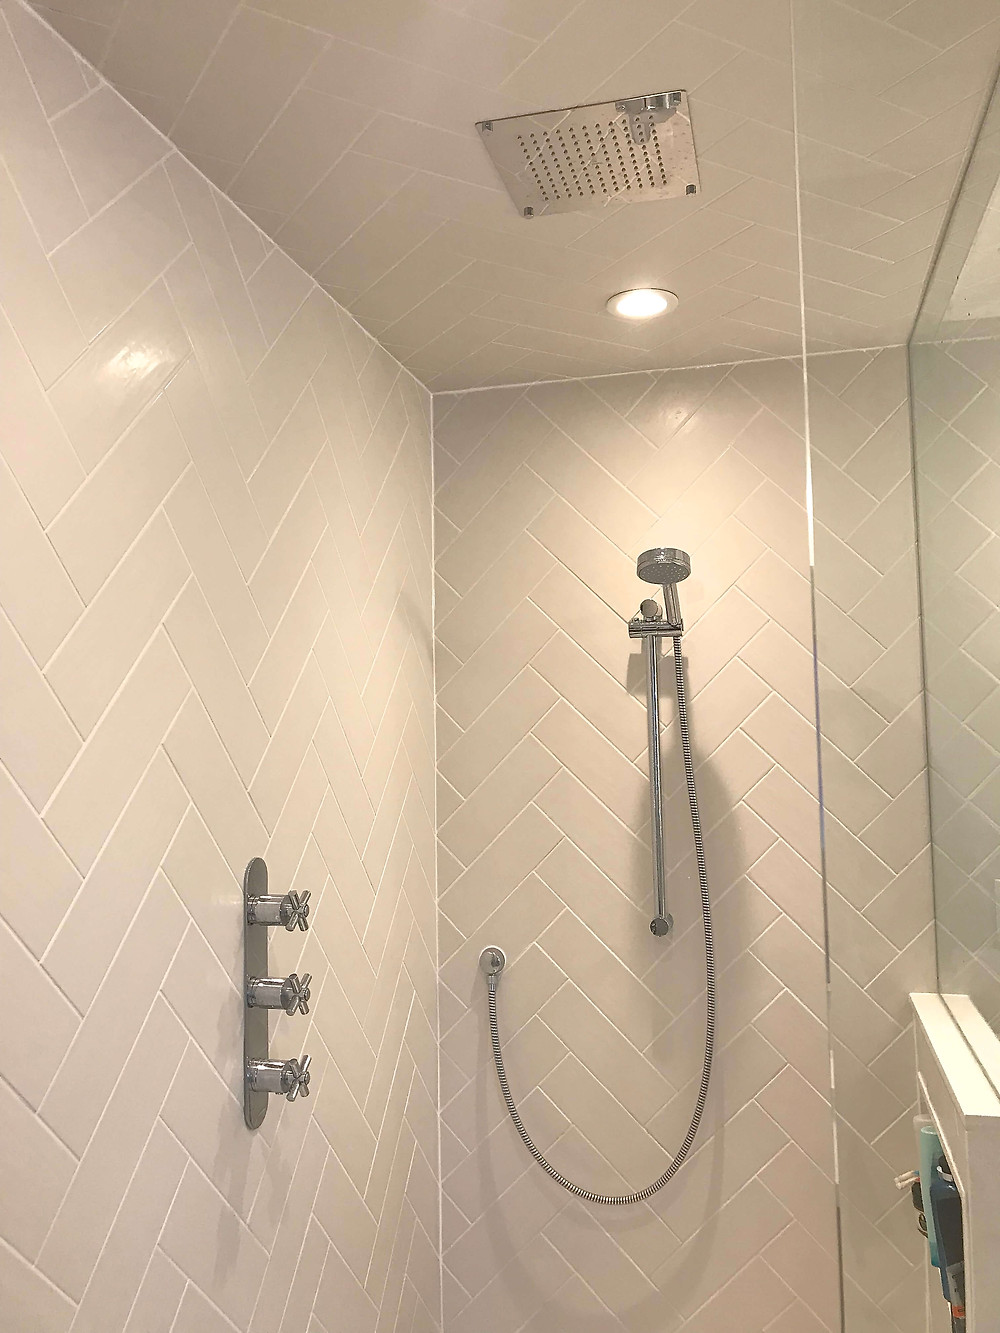 Rain shower and fixtures by Georgia's Design